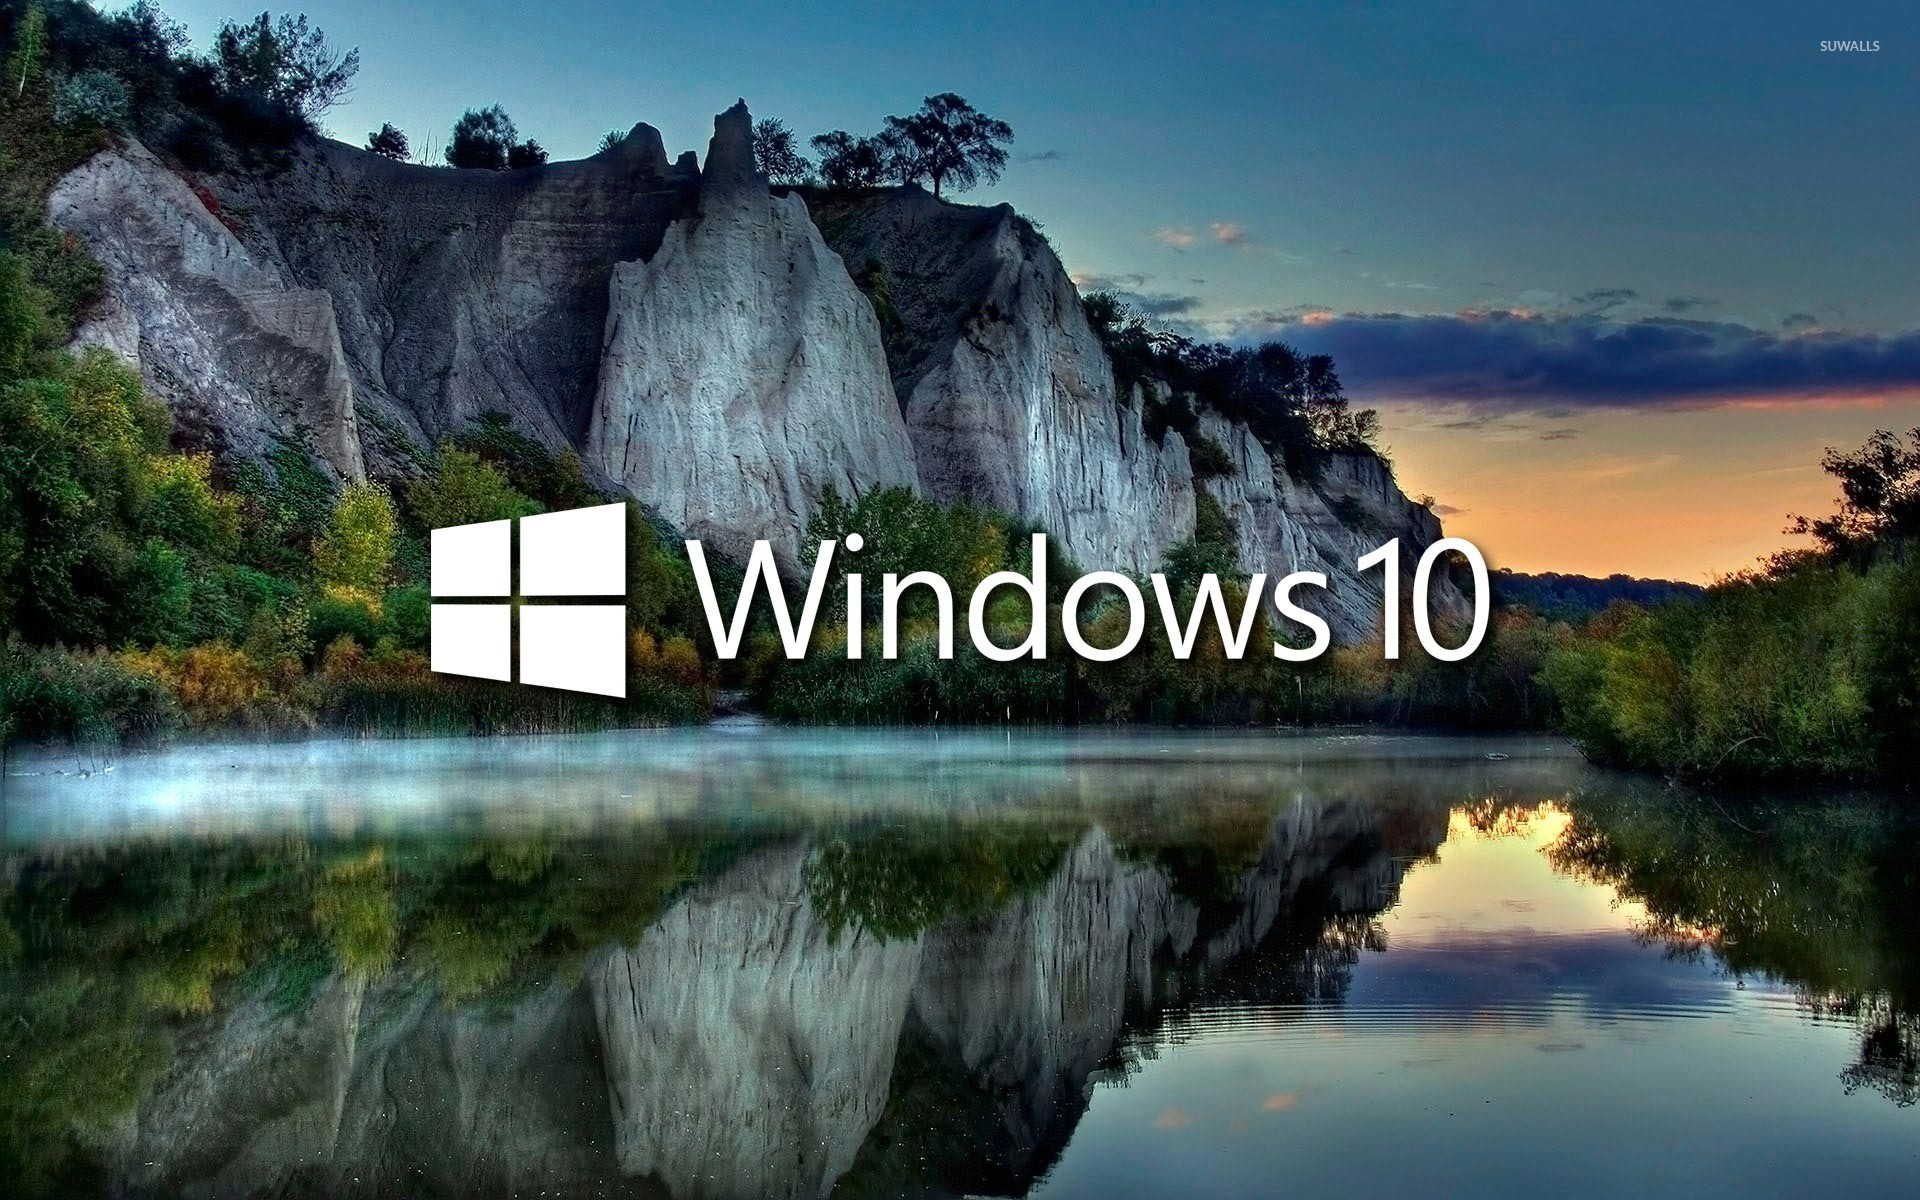 1920x1200 Windows 10 on the lake reflection [2] wallpaper  jpg